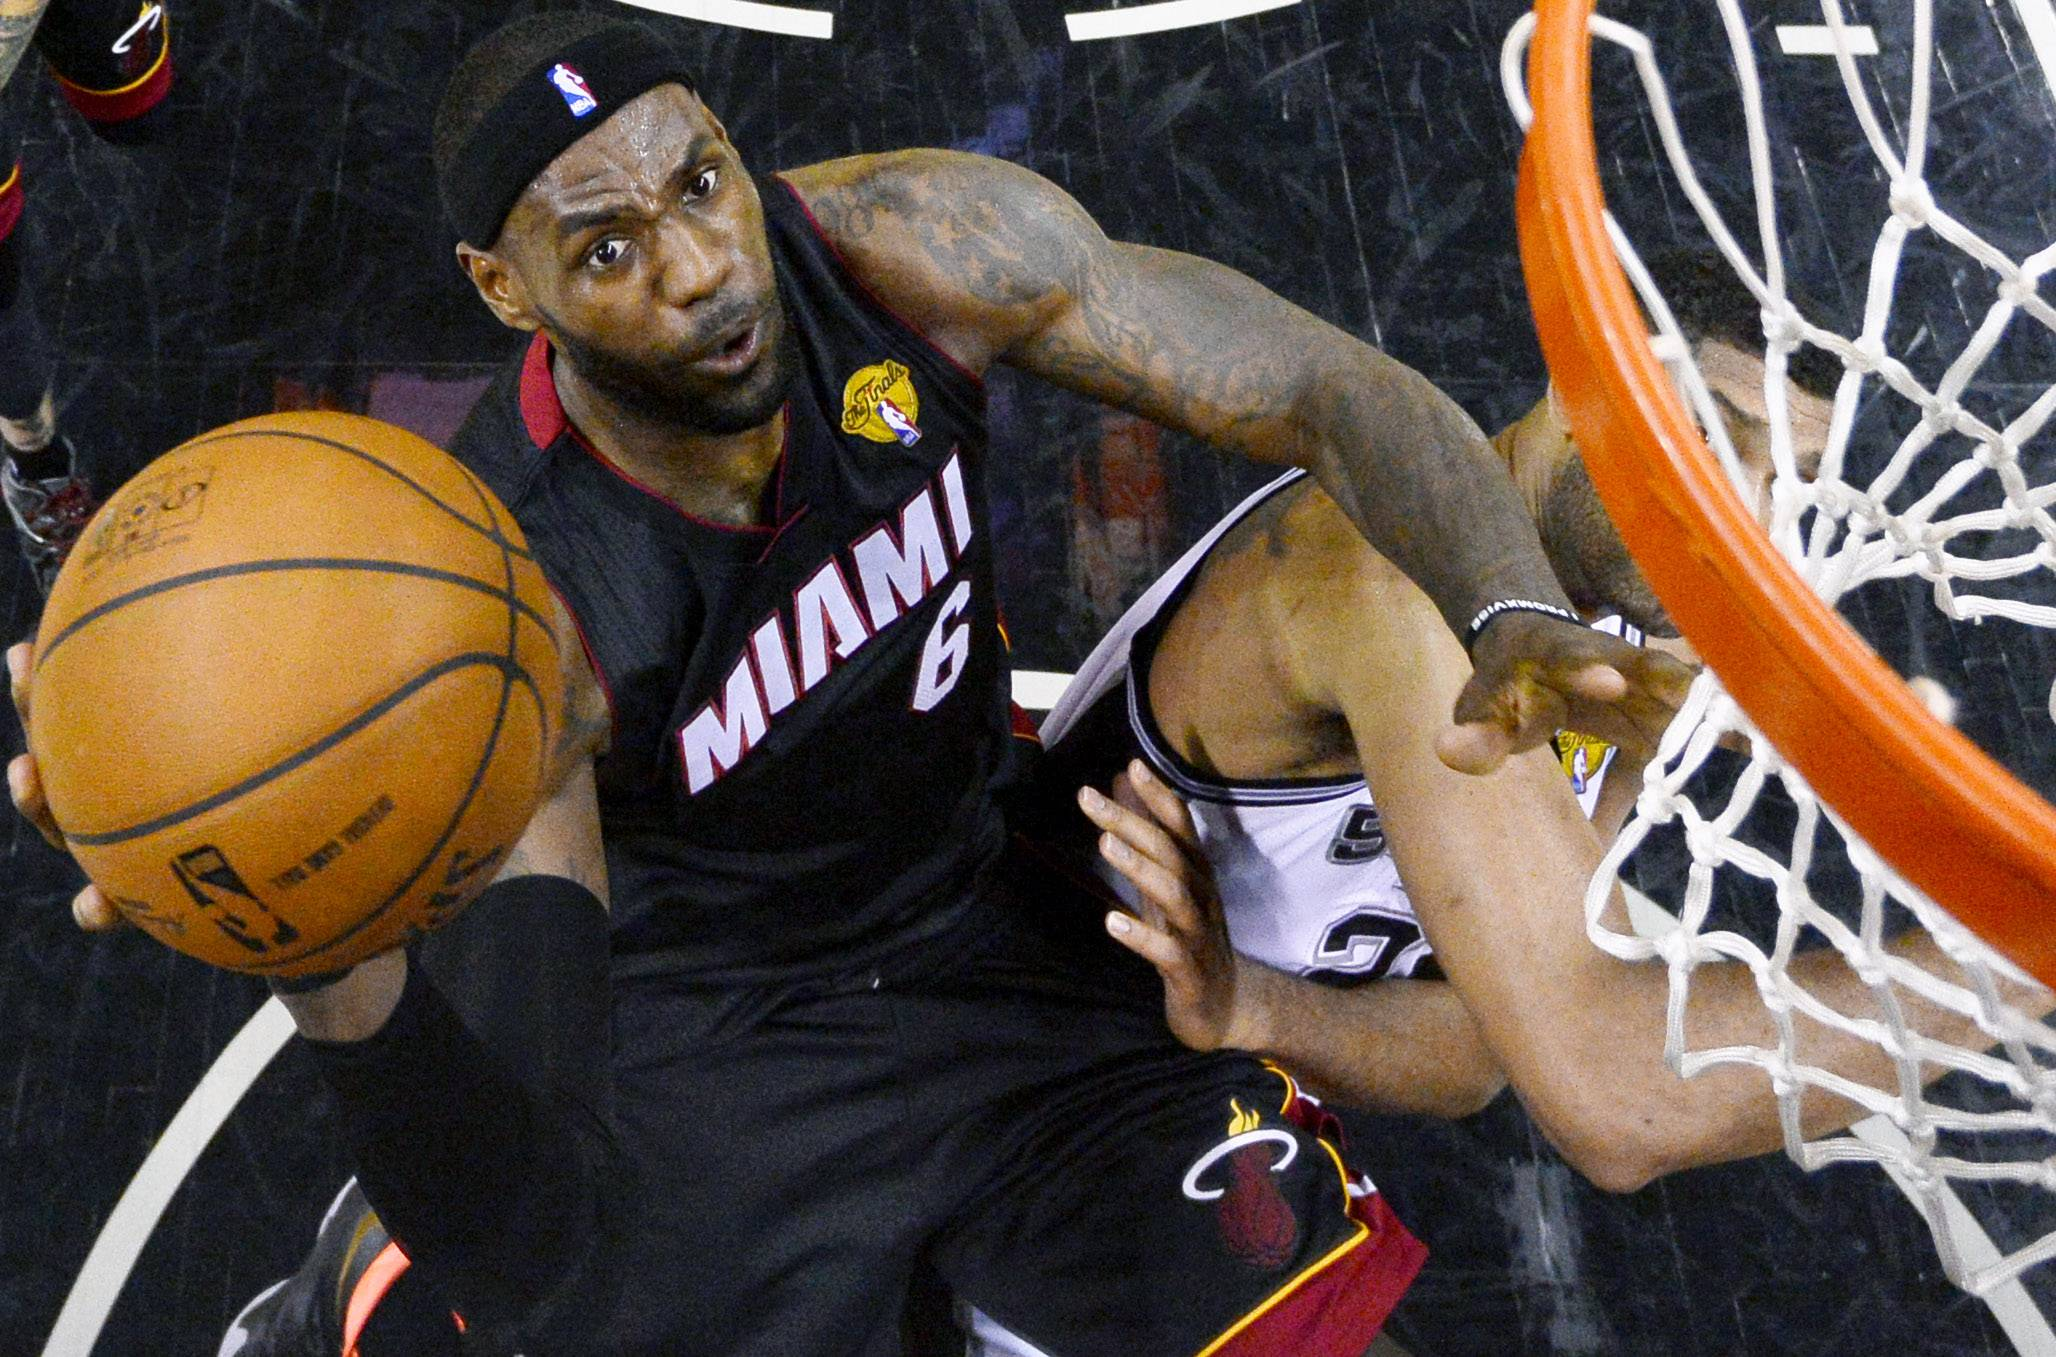 Miami Heat forward LeBron James shoots over San Antonio Spurs forward Tim Duncan (21) during the first half in Game 2 of the NBA basketball finals on Saturday, Nov. 8, 2014, in San Antonio.